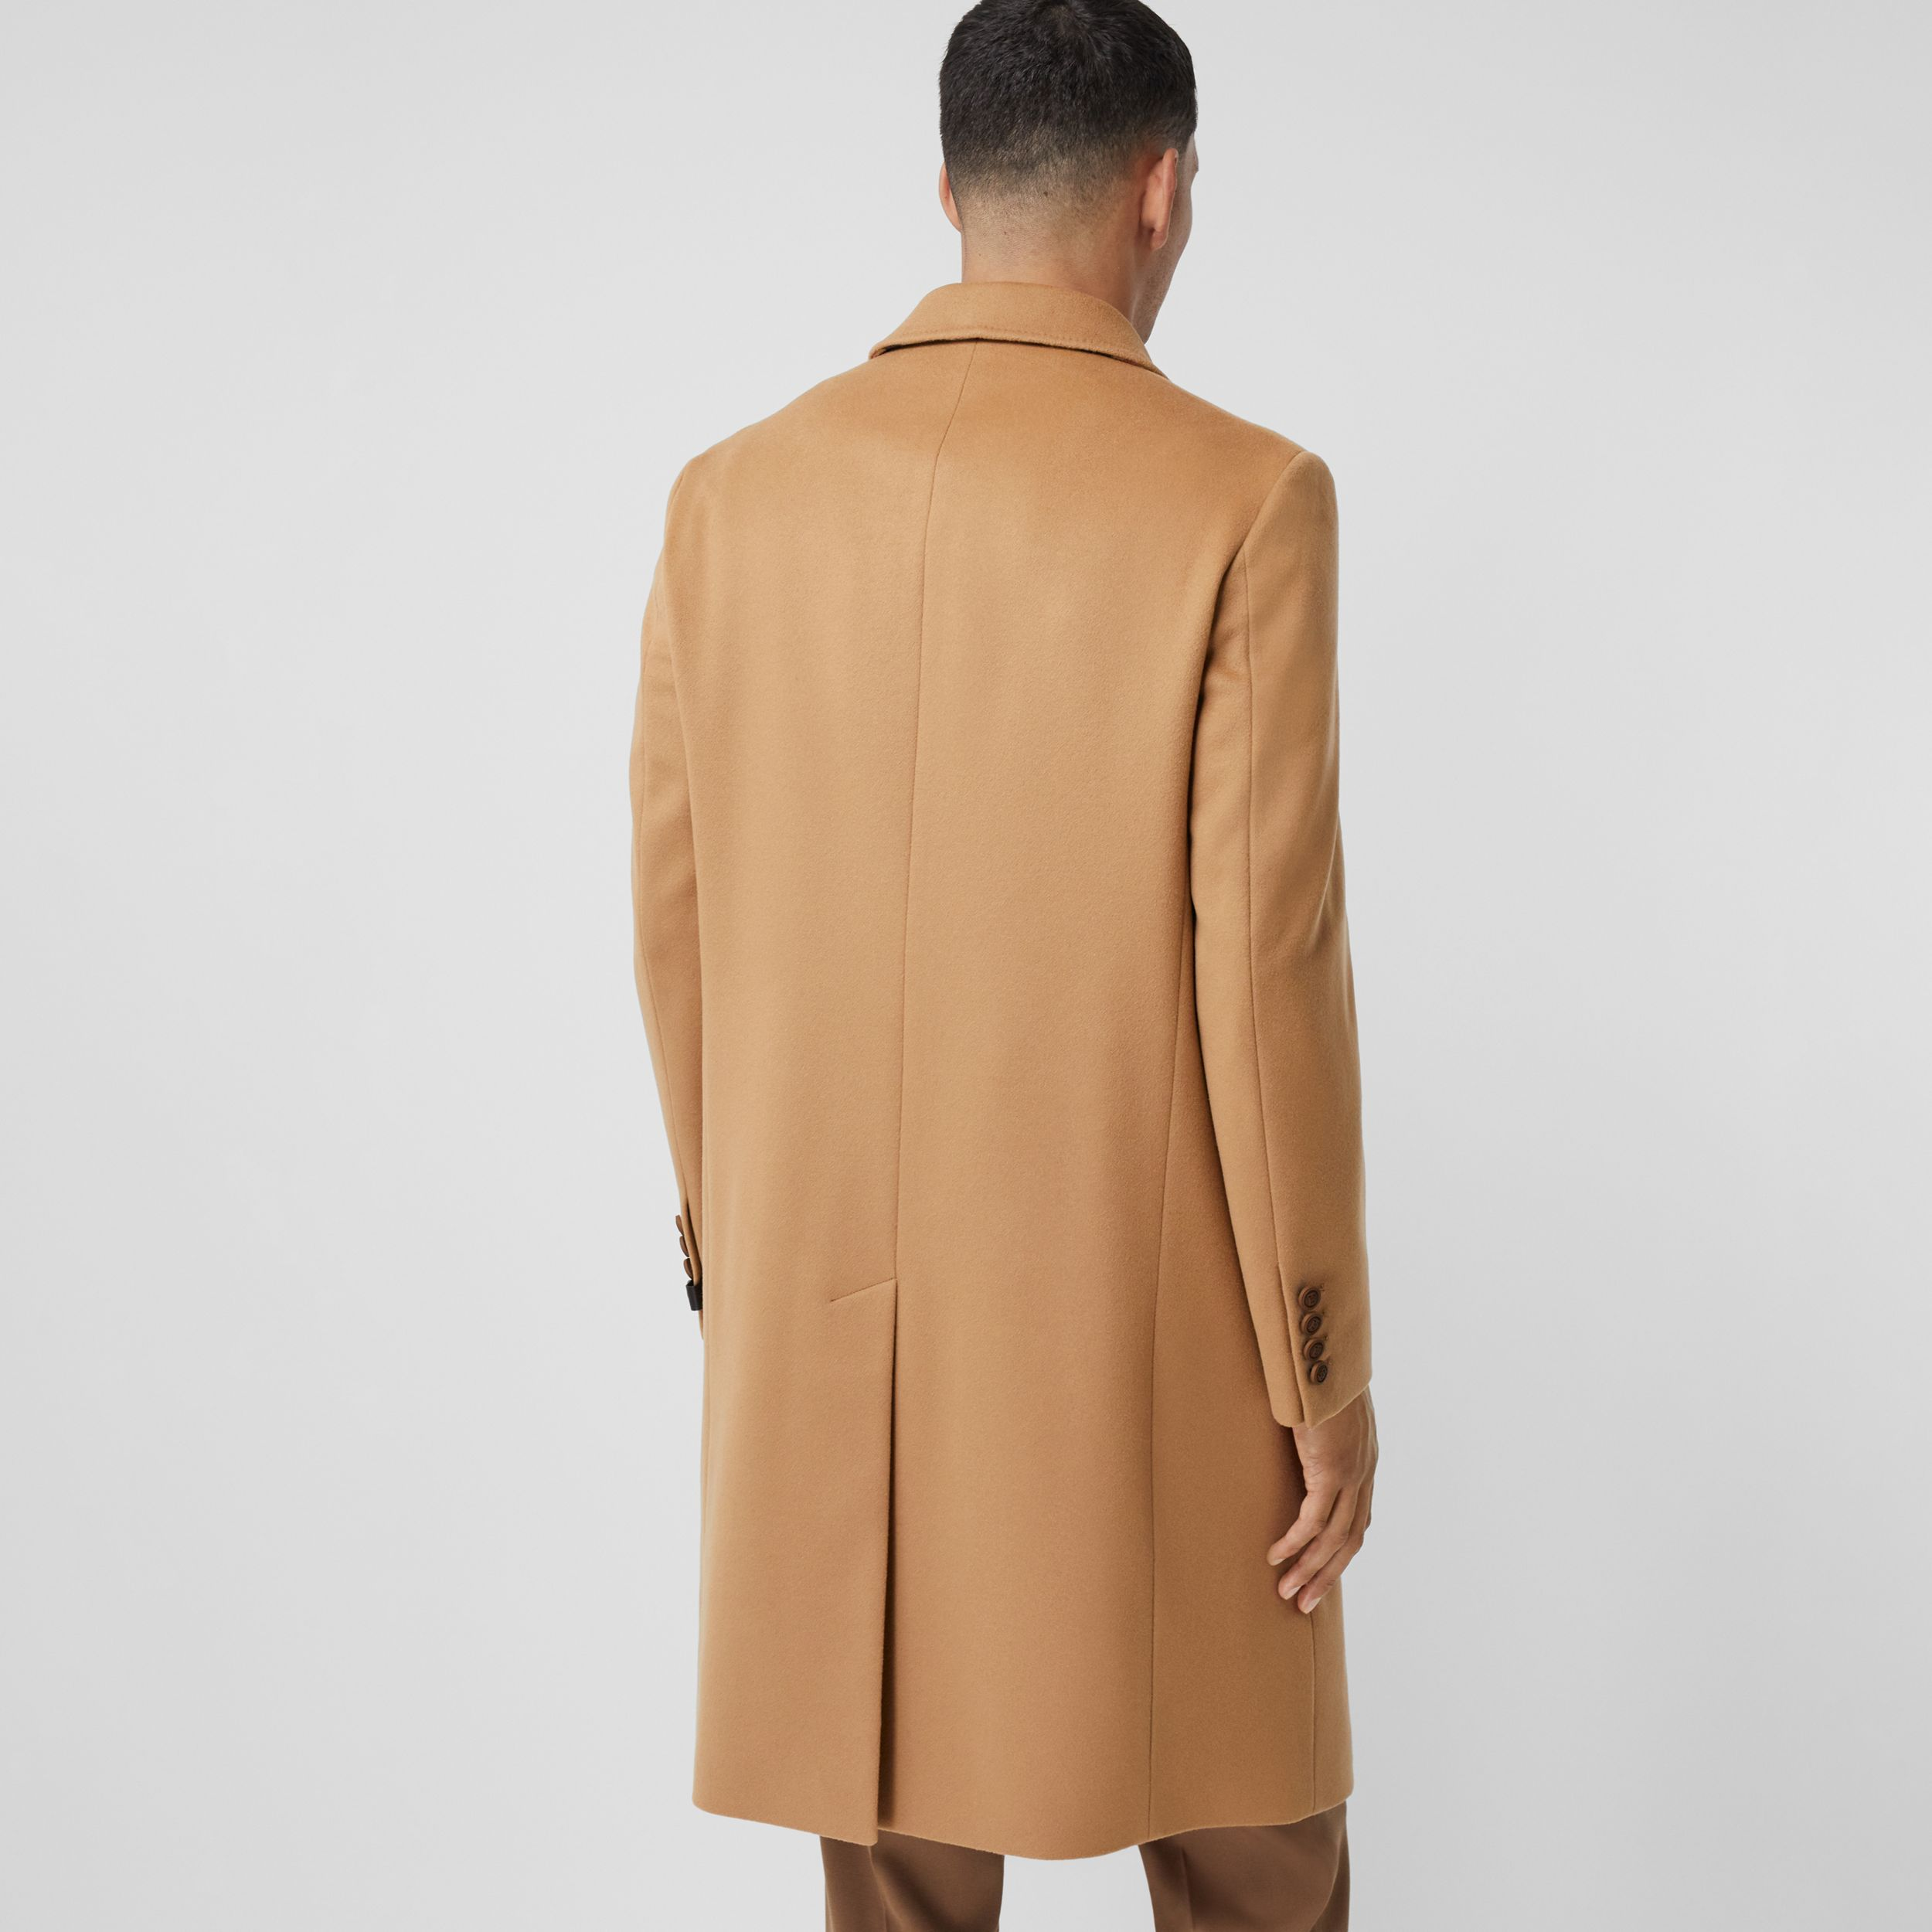 Button Detail Wool Cashmere Tailored Coat in Camel - Men | Burberry - 3